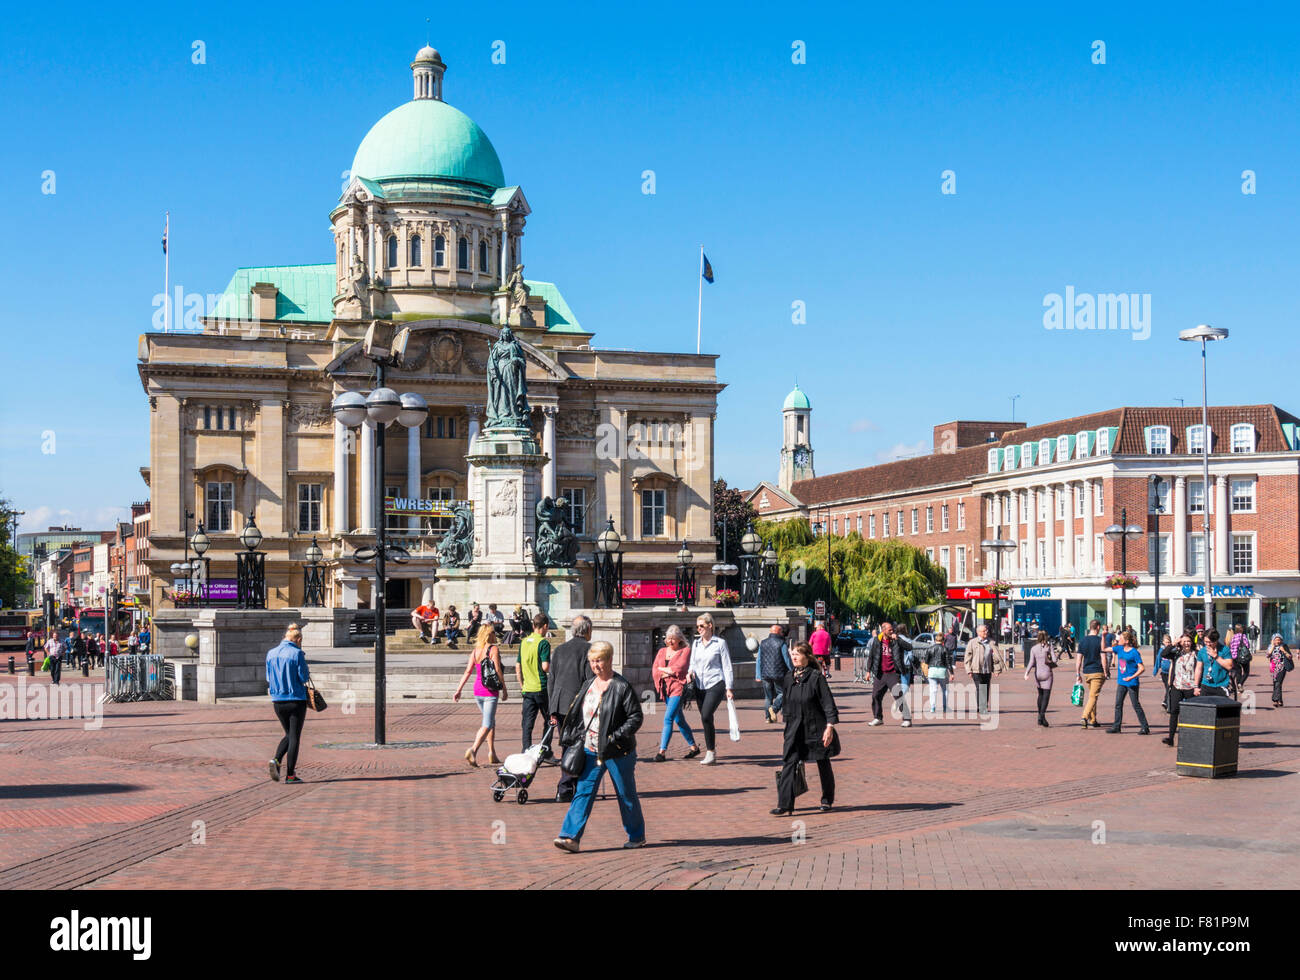 Hull City Hall in Queen Victoria Square Kingston upon Hull Yorkshire England UK GB EU Europe - Stock Image